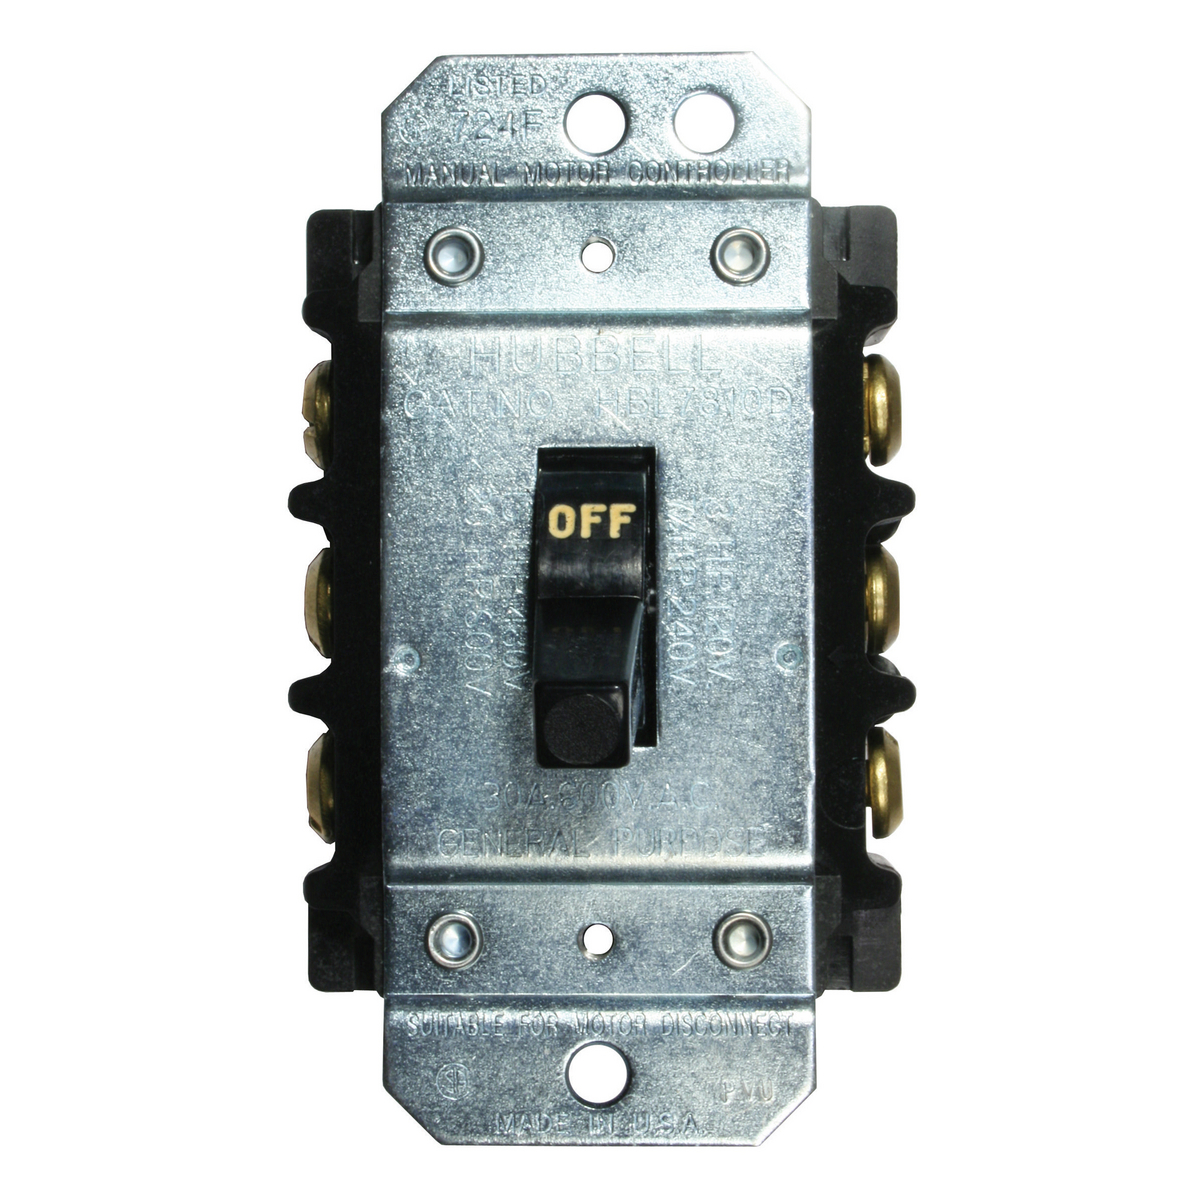 Hbl7810d Wdk Brand Hubbell Type Or Bulk Oil Circuit Breaker Now Obsolete Your Electrical Home